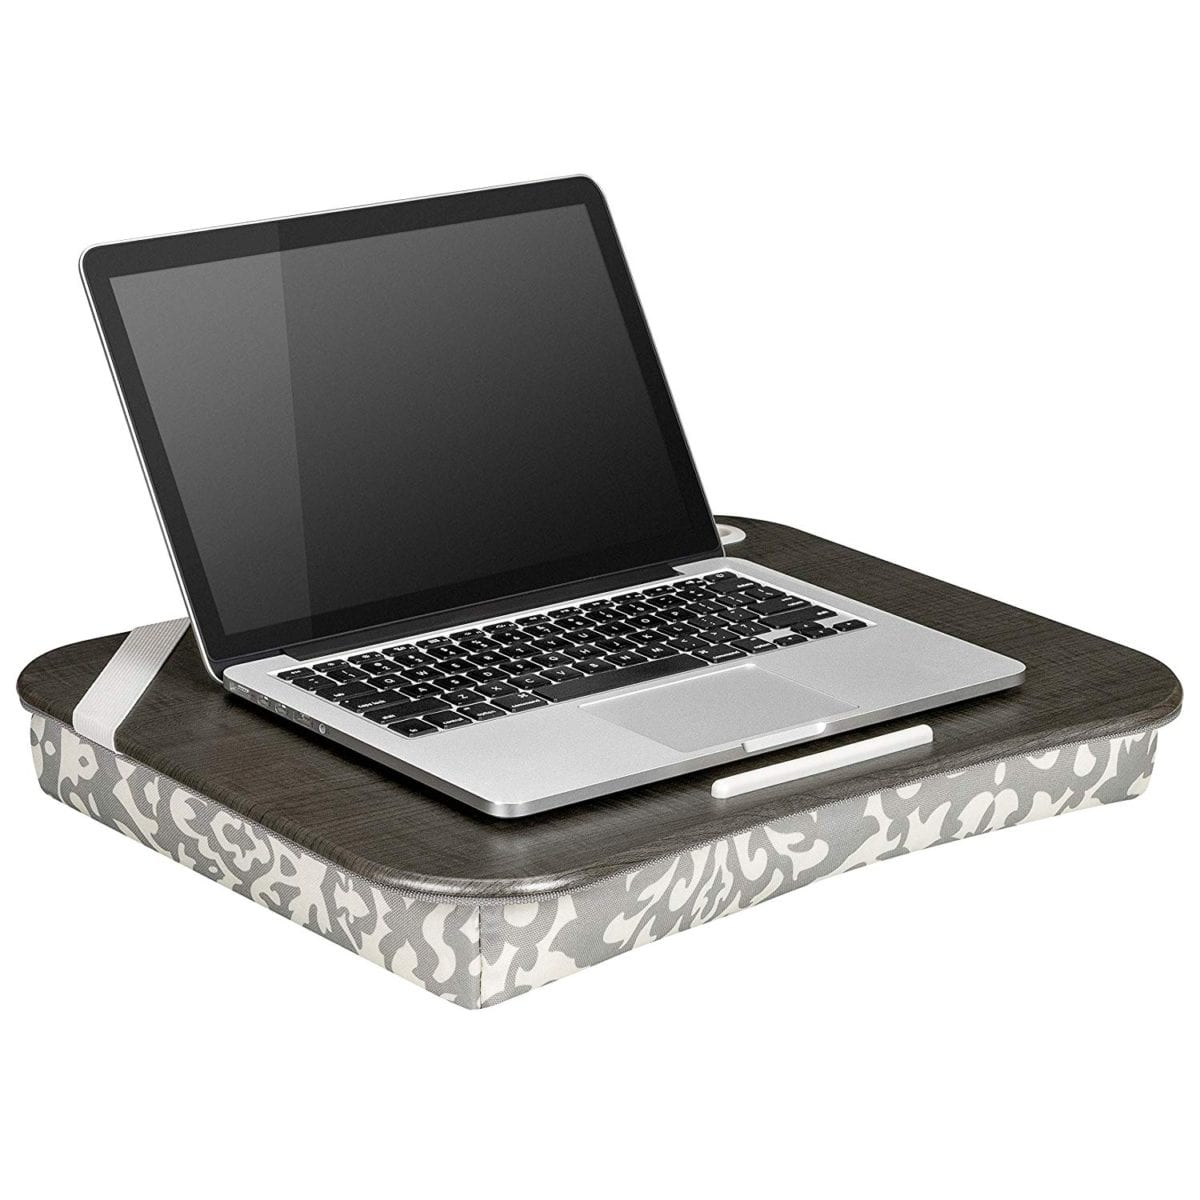 Lap Desk gift ideas for entrepreneurs